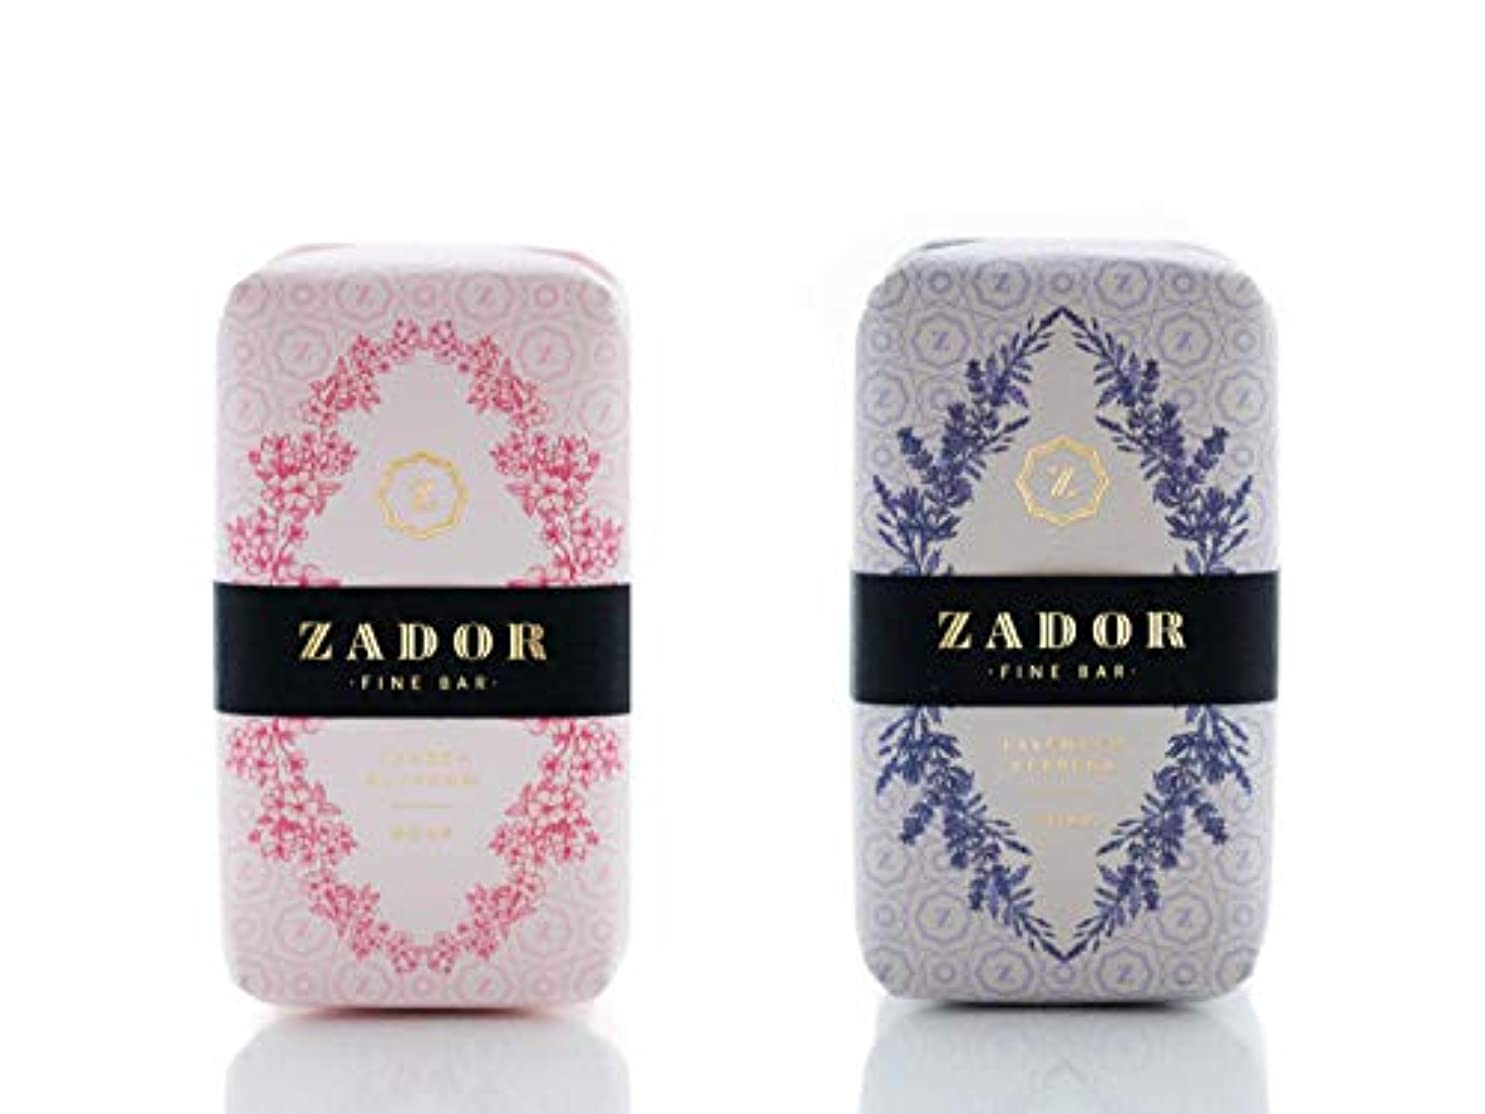 ZADOR 石けん 2個ギフトセット (箱付き) ZADOR SOAP GIFT SET with GIFT BOX